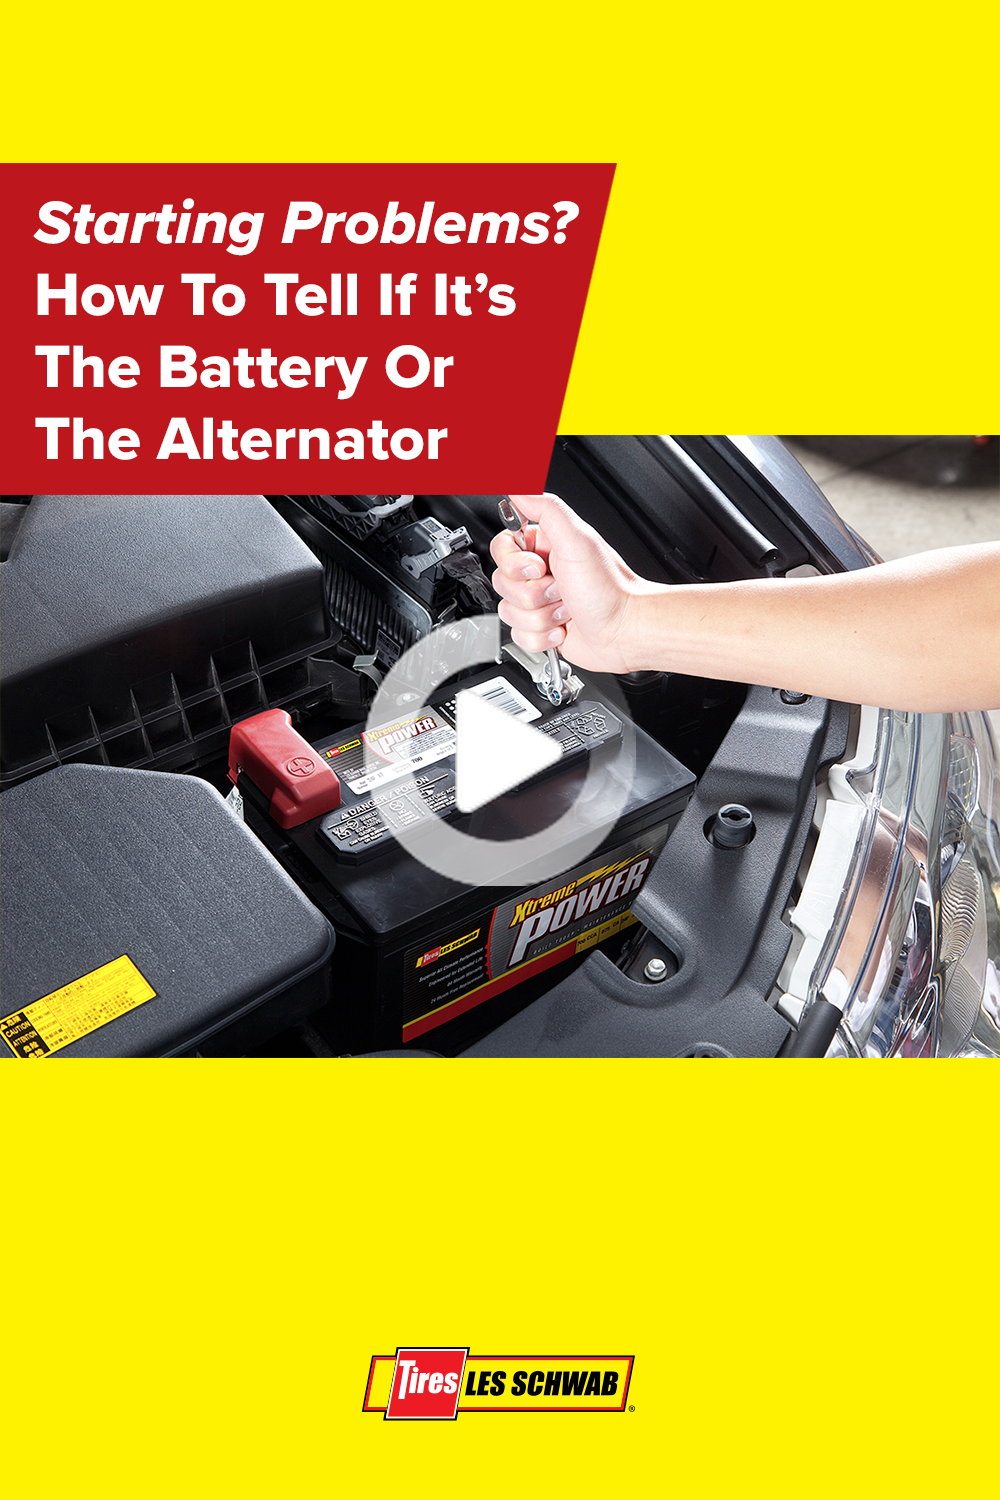 Starting Problems Is It The Battery Or Alternator In 2020 Alternator Car Battery To Tell